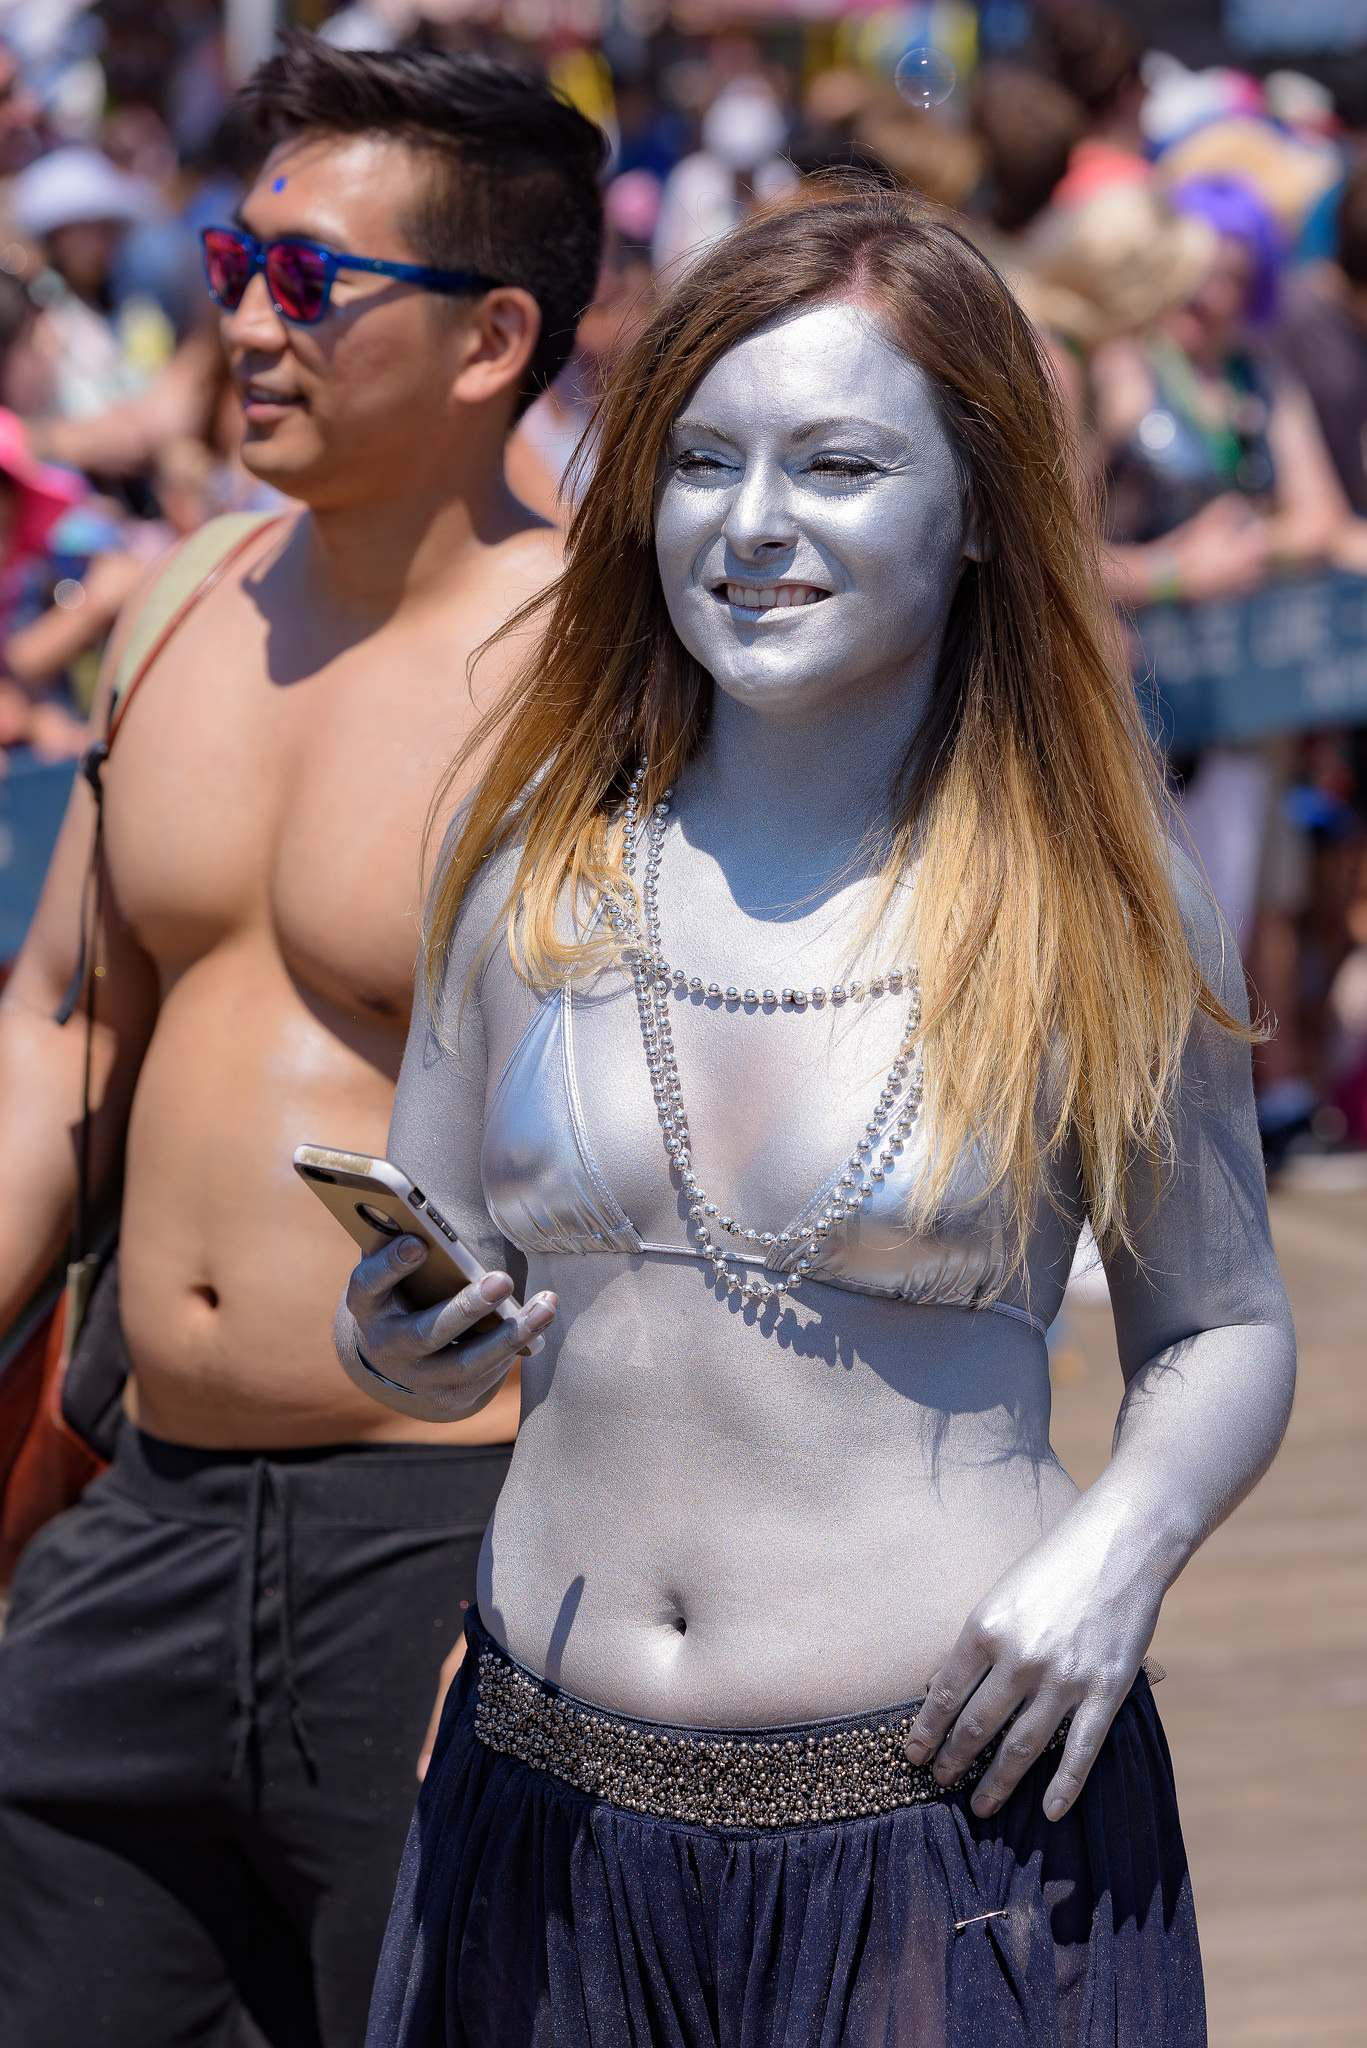 mermaid parade8 2016 Coney Island Mermaid Parade in NYC